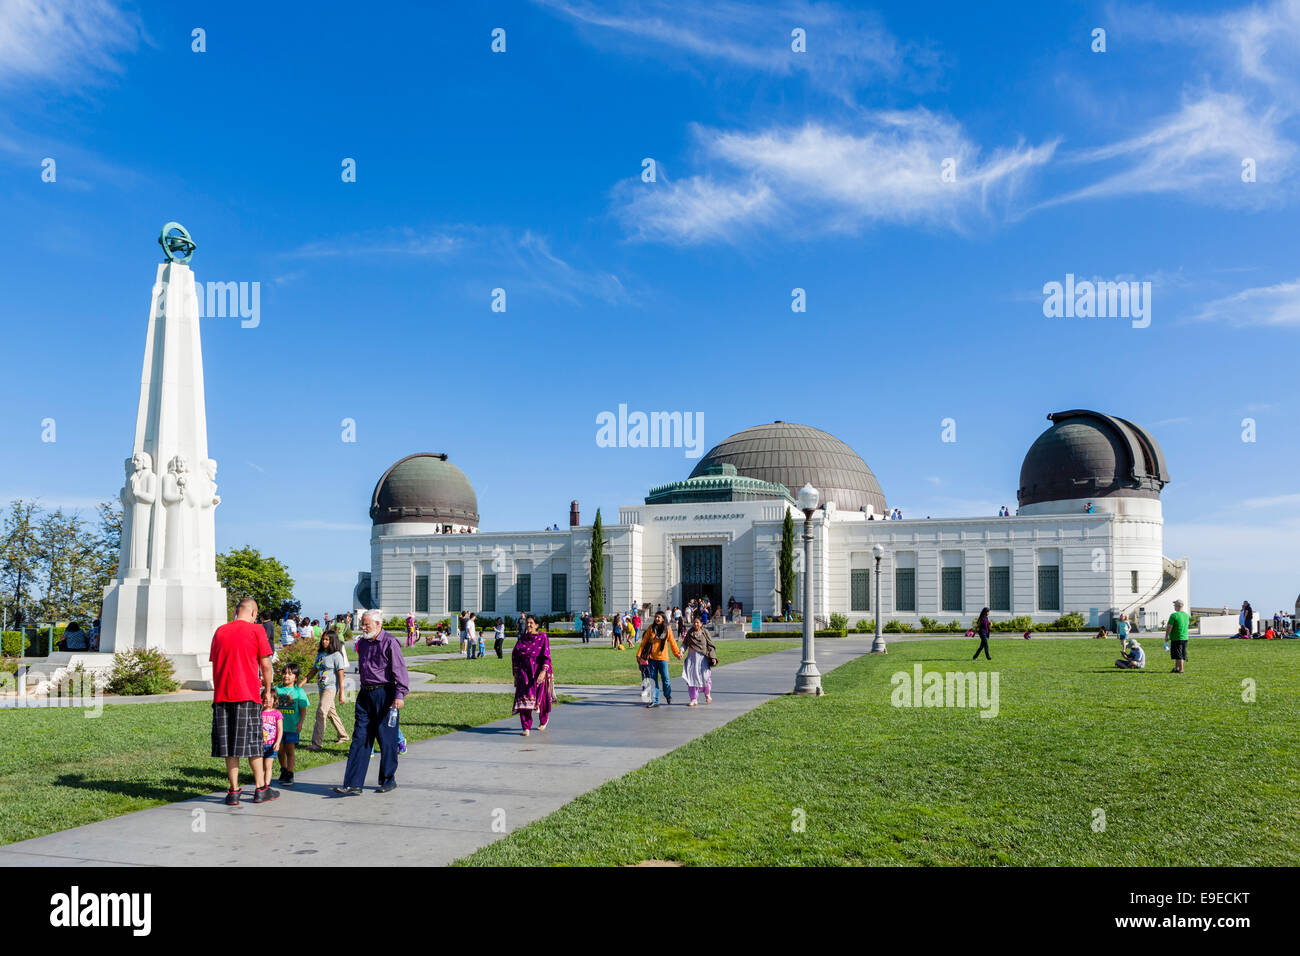 The Griffith Observatory on Mount Hollywood, Griffith Park, Los Angeles, California, USA - Stock Image